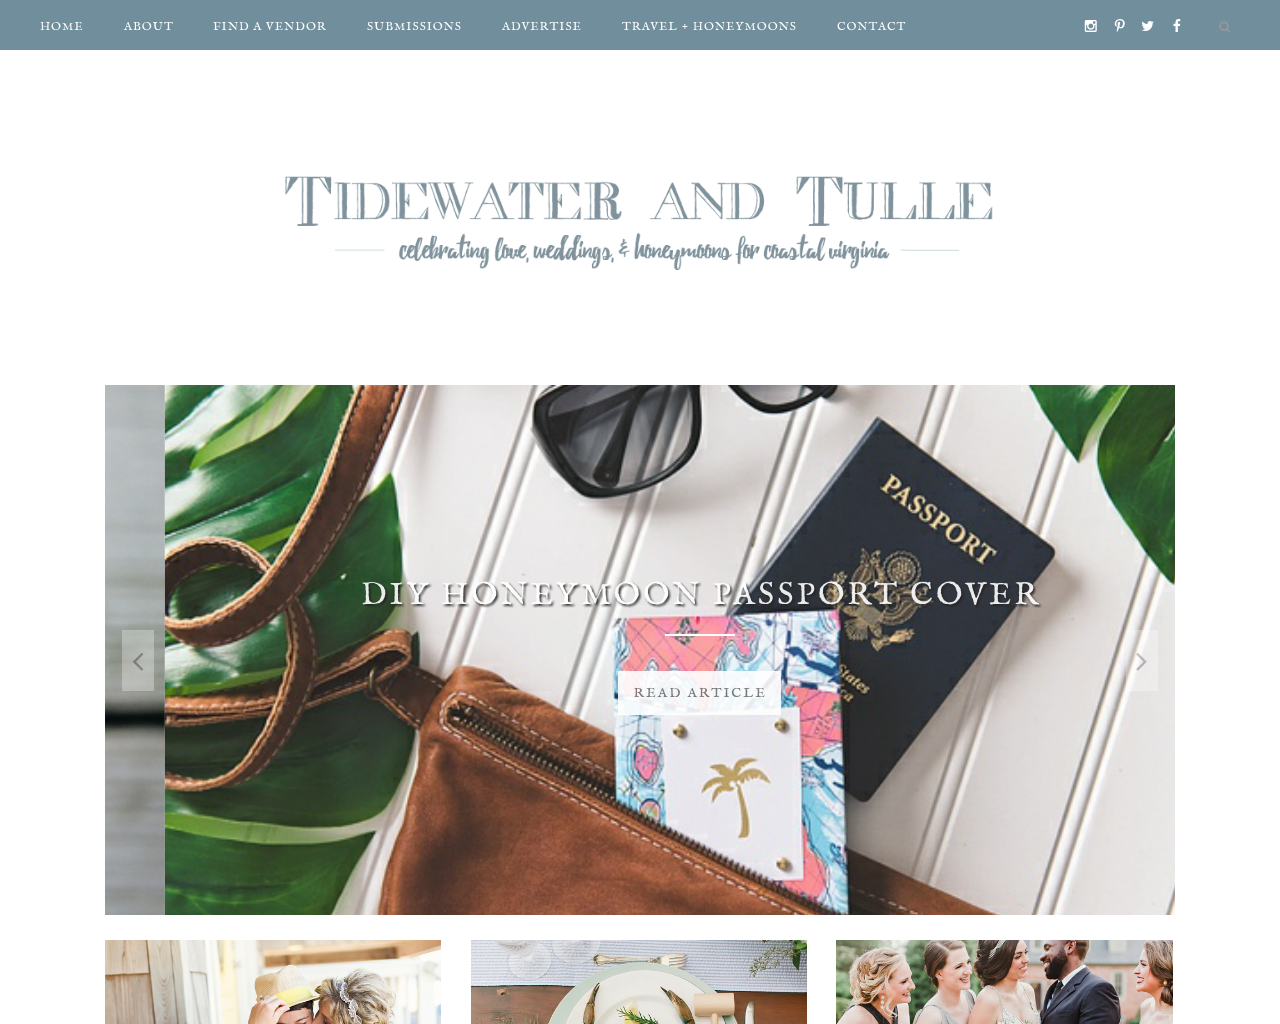 Tidewater-and-Tulle-Advertising-Reviews-Pricing